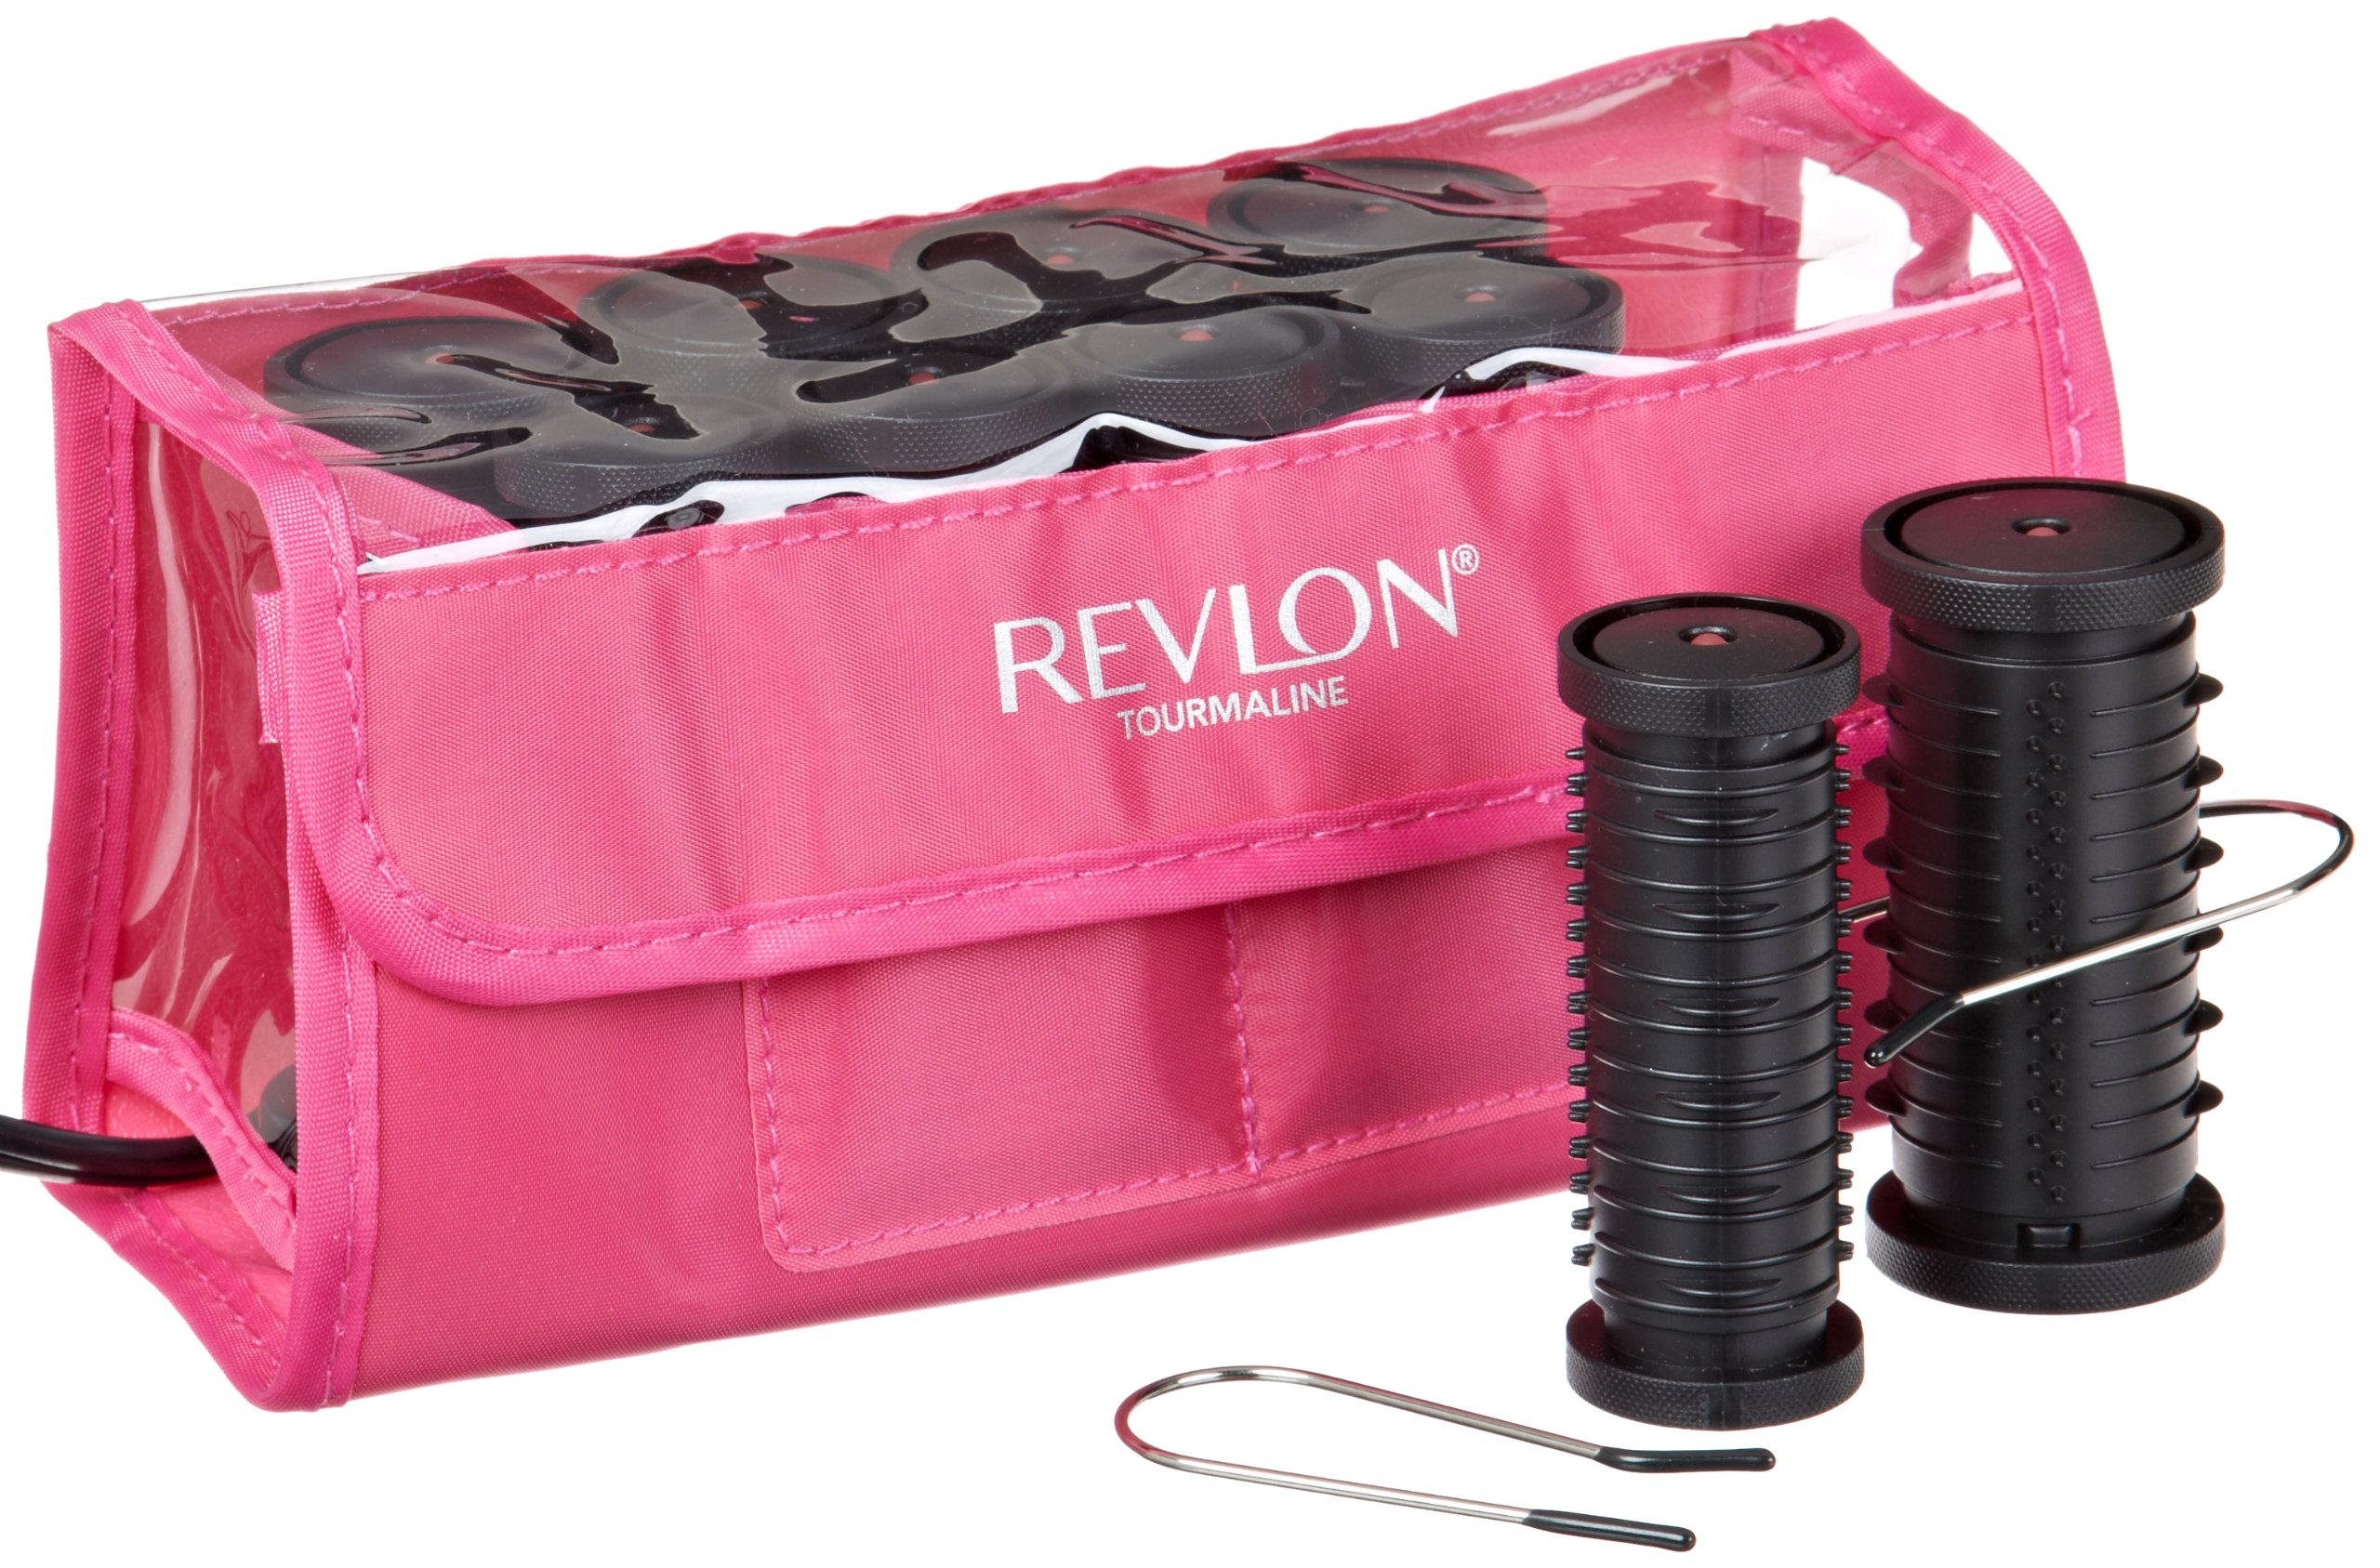 Revlon Curls-to-Go 10 Piece Travel Hot Rollers - 91FYYX8JAmL - Revlon Curls-to-Go 10 Piece Travel Hot Rollers